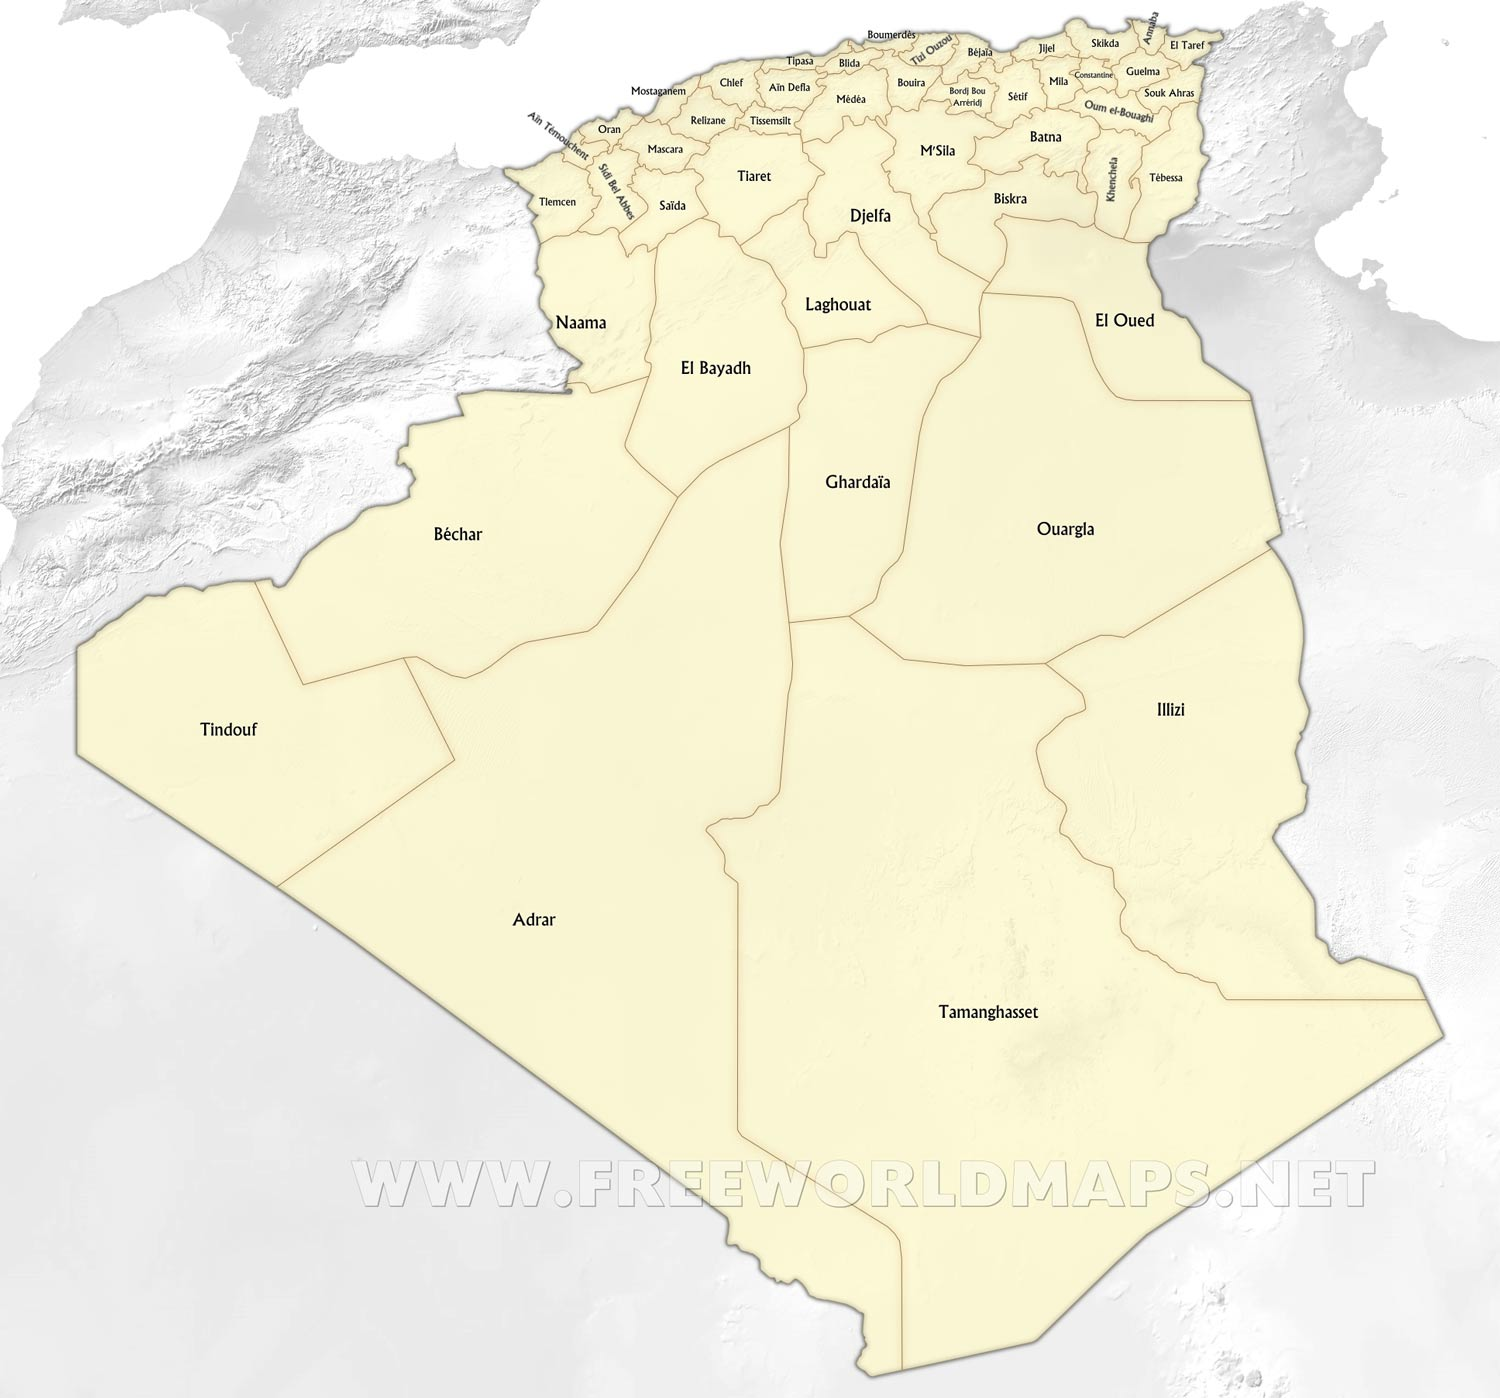 Algeria Maps By Freeworldmapsnet - Algeria map